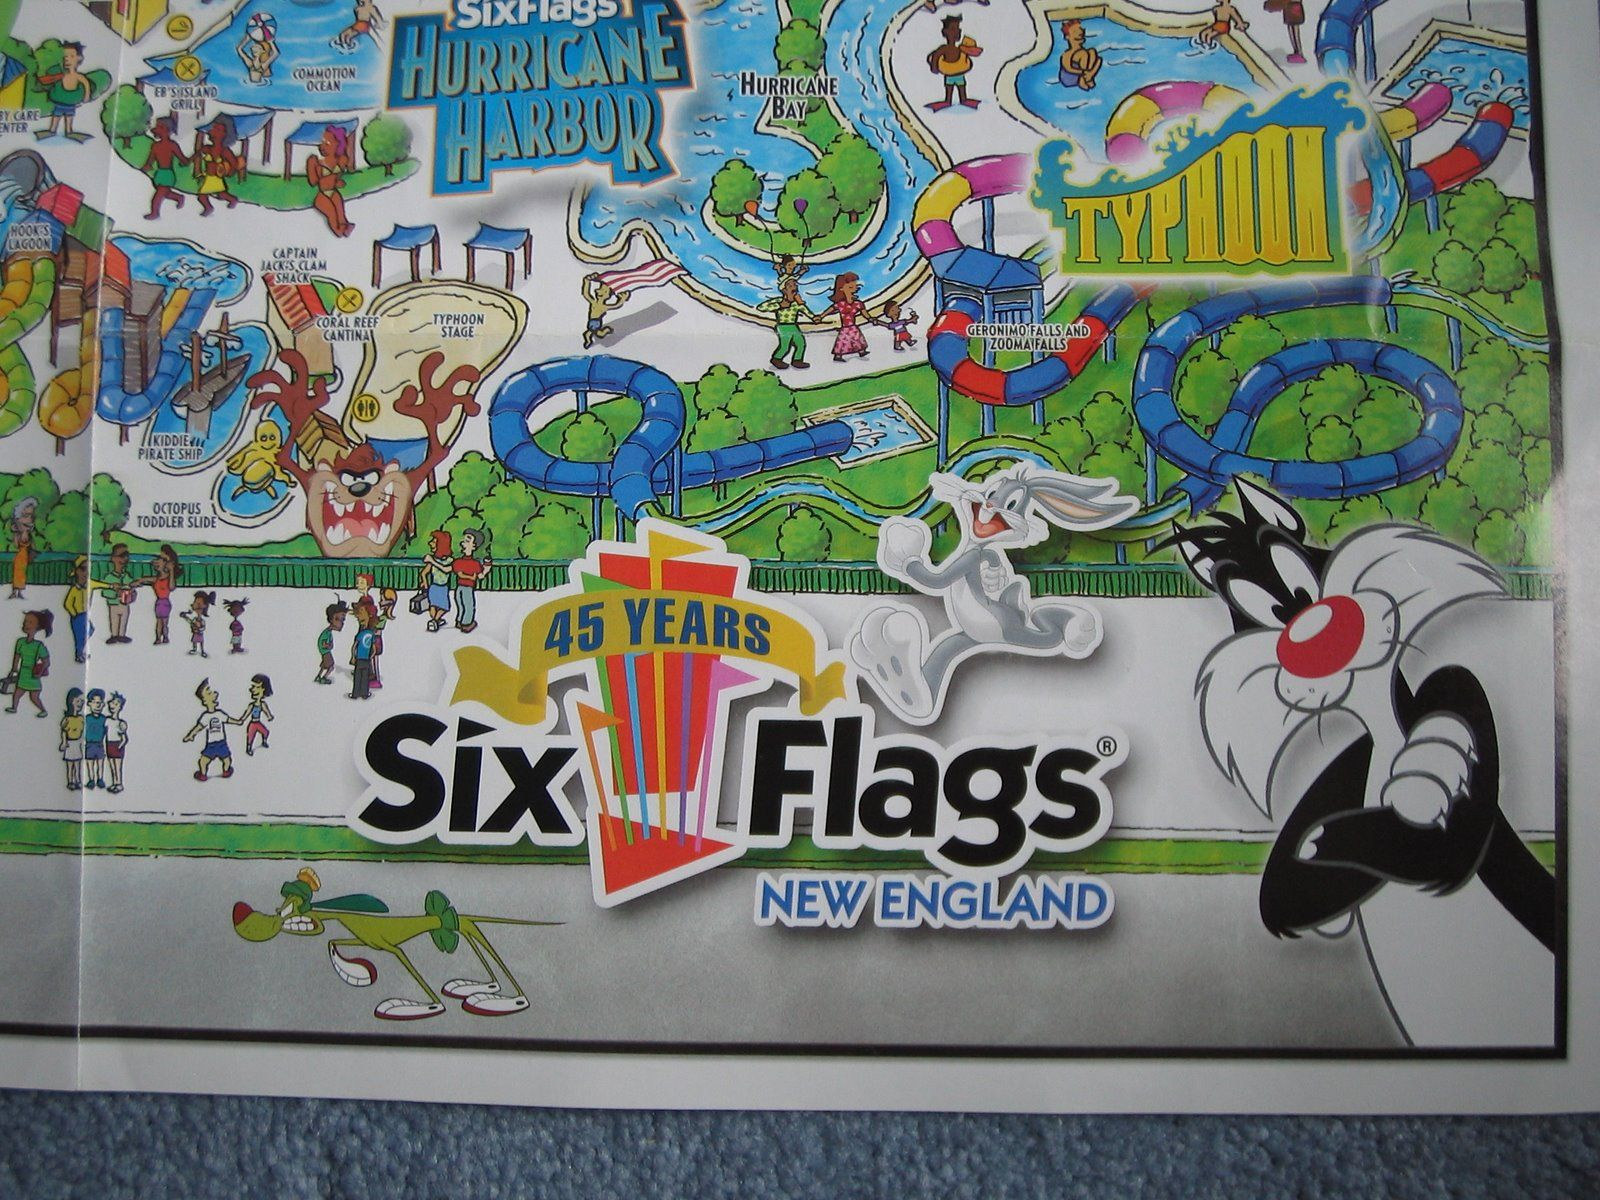 Six Flags New England 3 I Used To Have My Season Passes To 6 Flaggs When I Lived In Ct What A Blast The Water Park I Six Flags America Theme New England